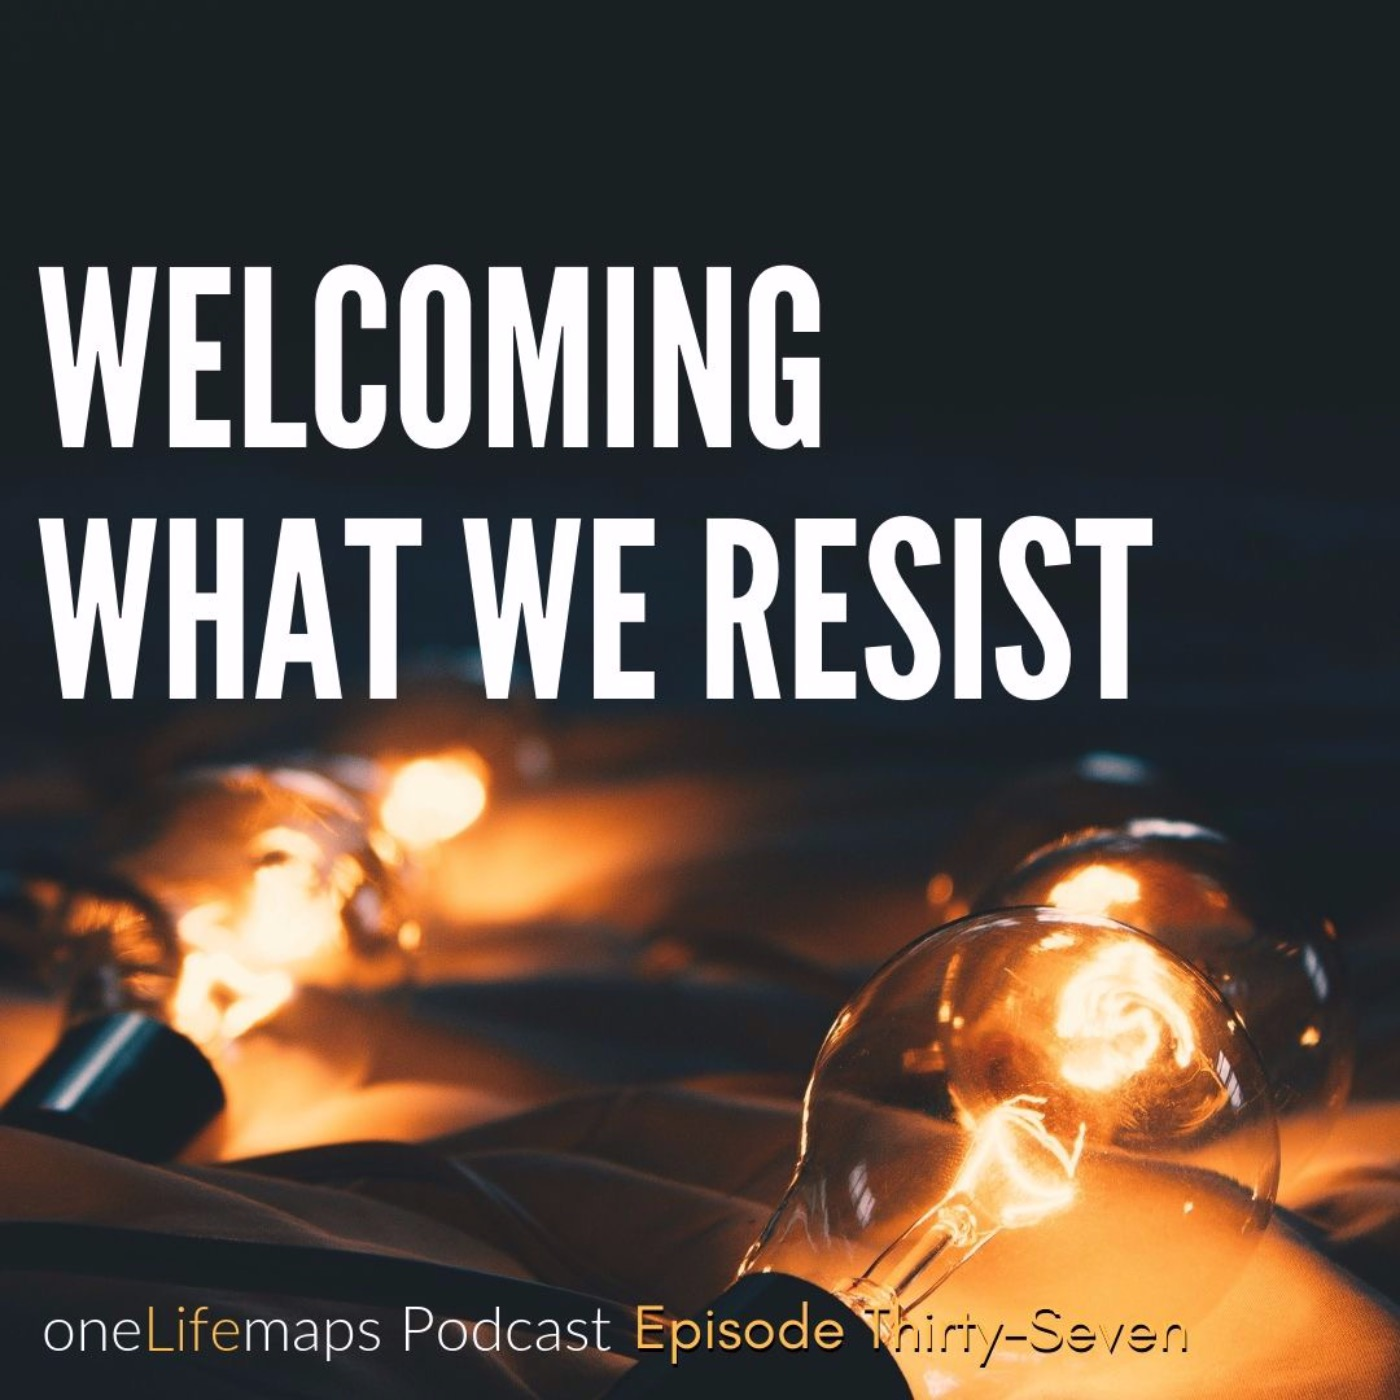 Welcoming What We Resist